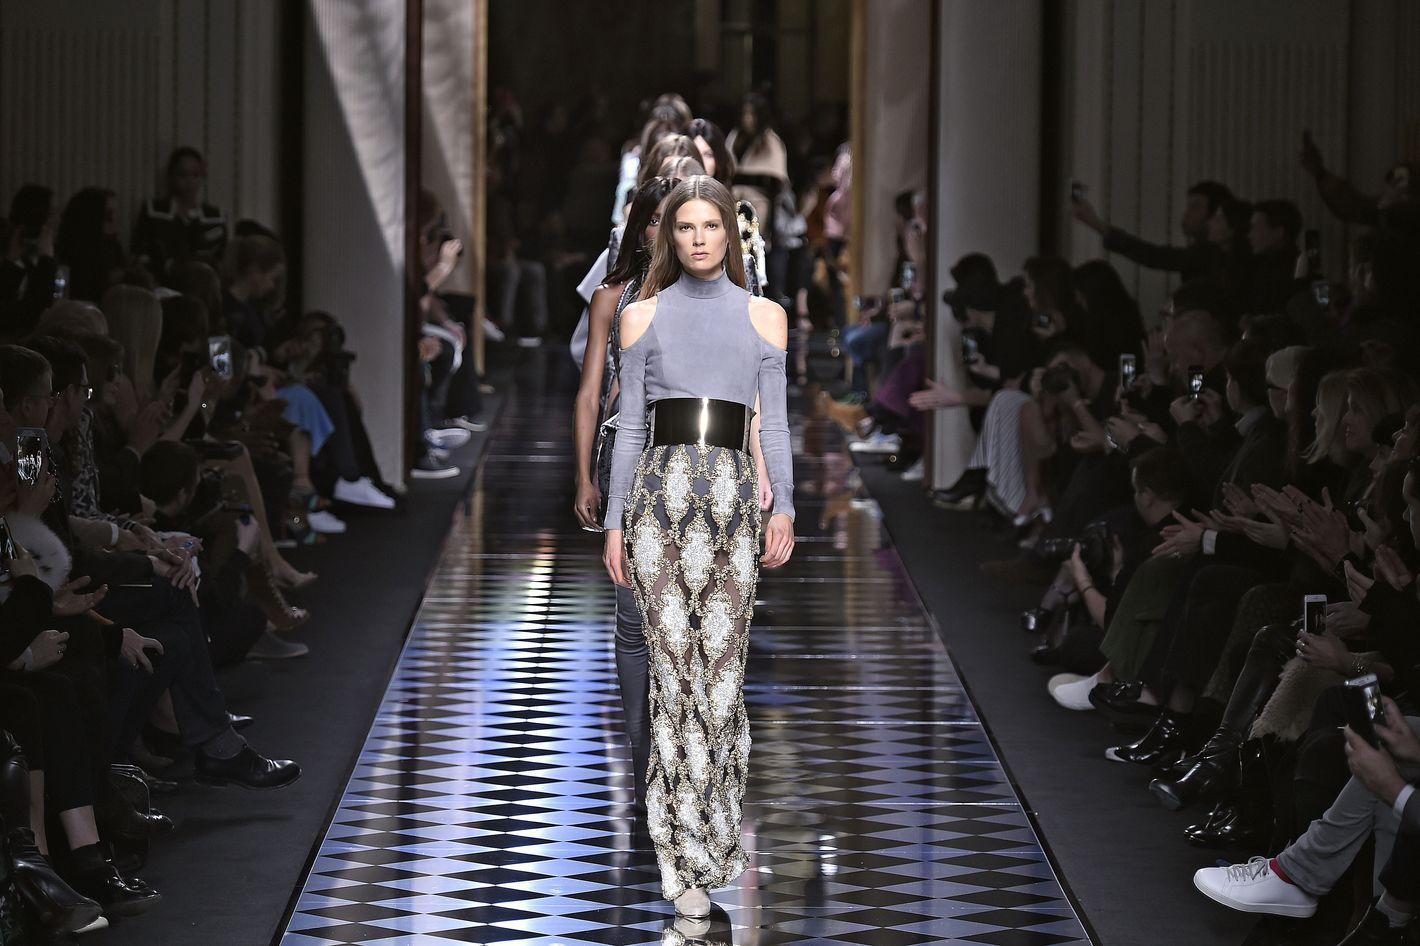 Valentinos Parent Company Officially Purchases Balmain Valentinos Parent Company Officially Purchases Balmain new images